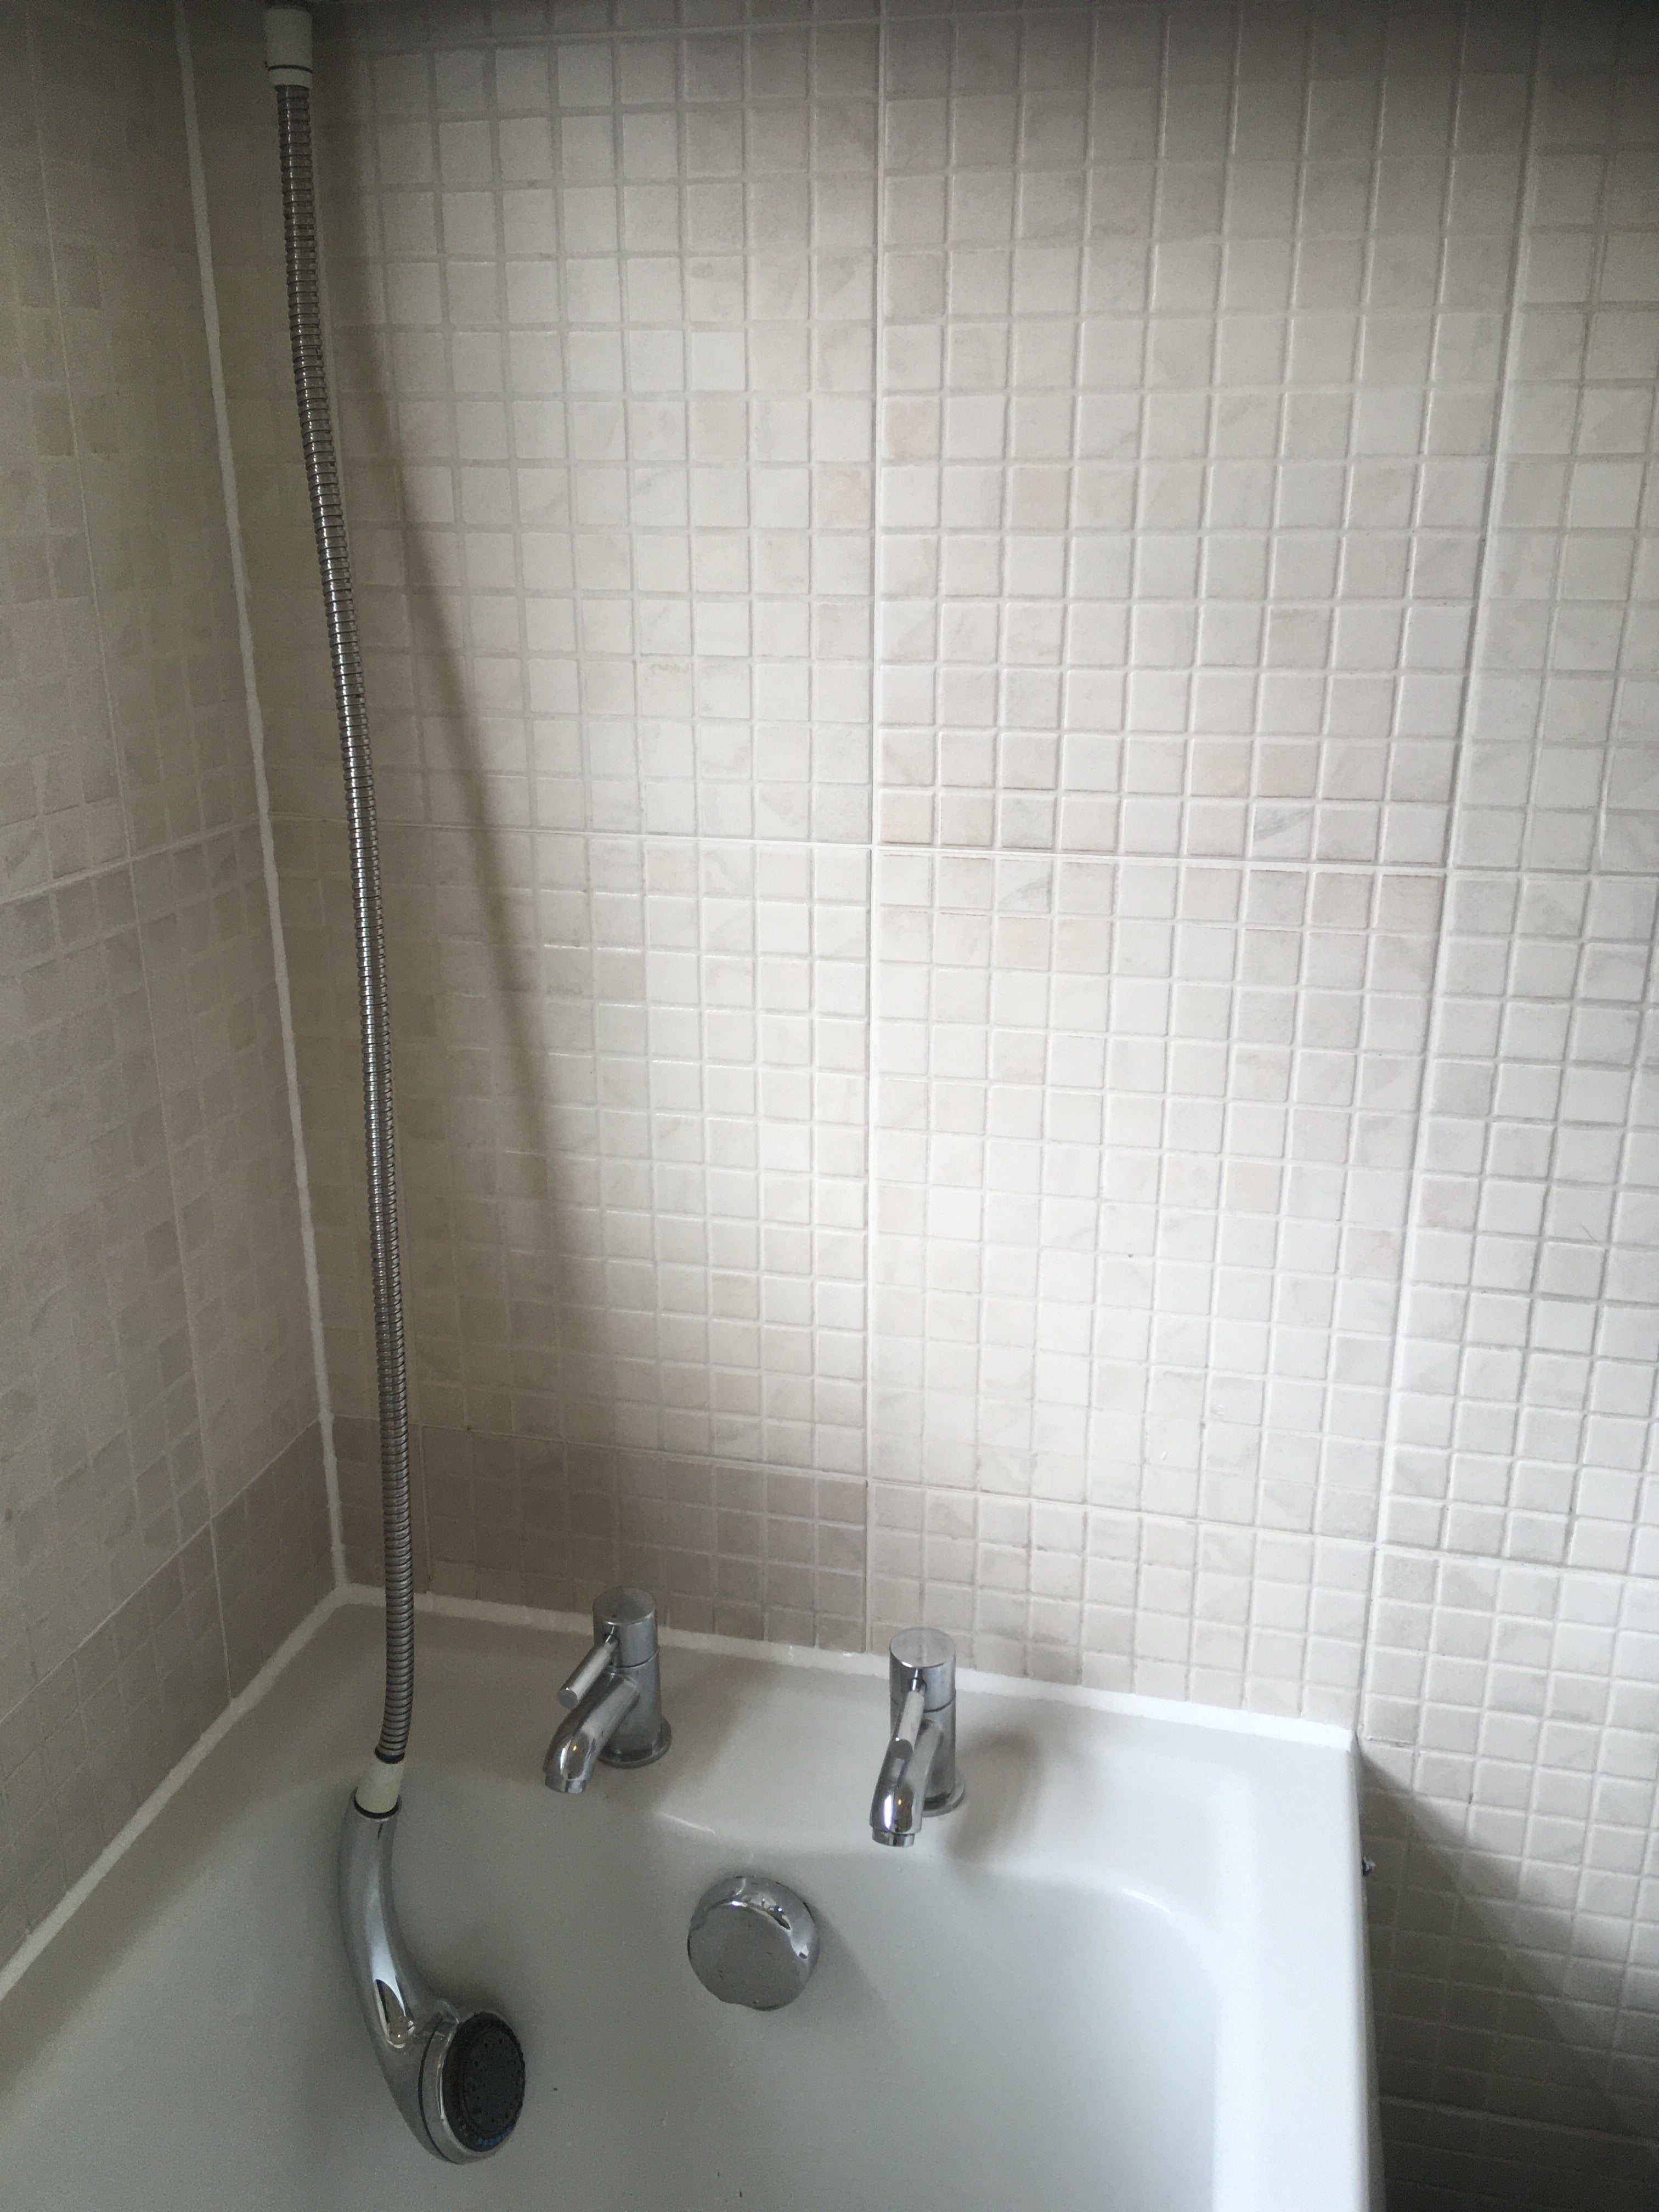 Mouldy Shower Bath Tiling After Renovation Levenshulme